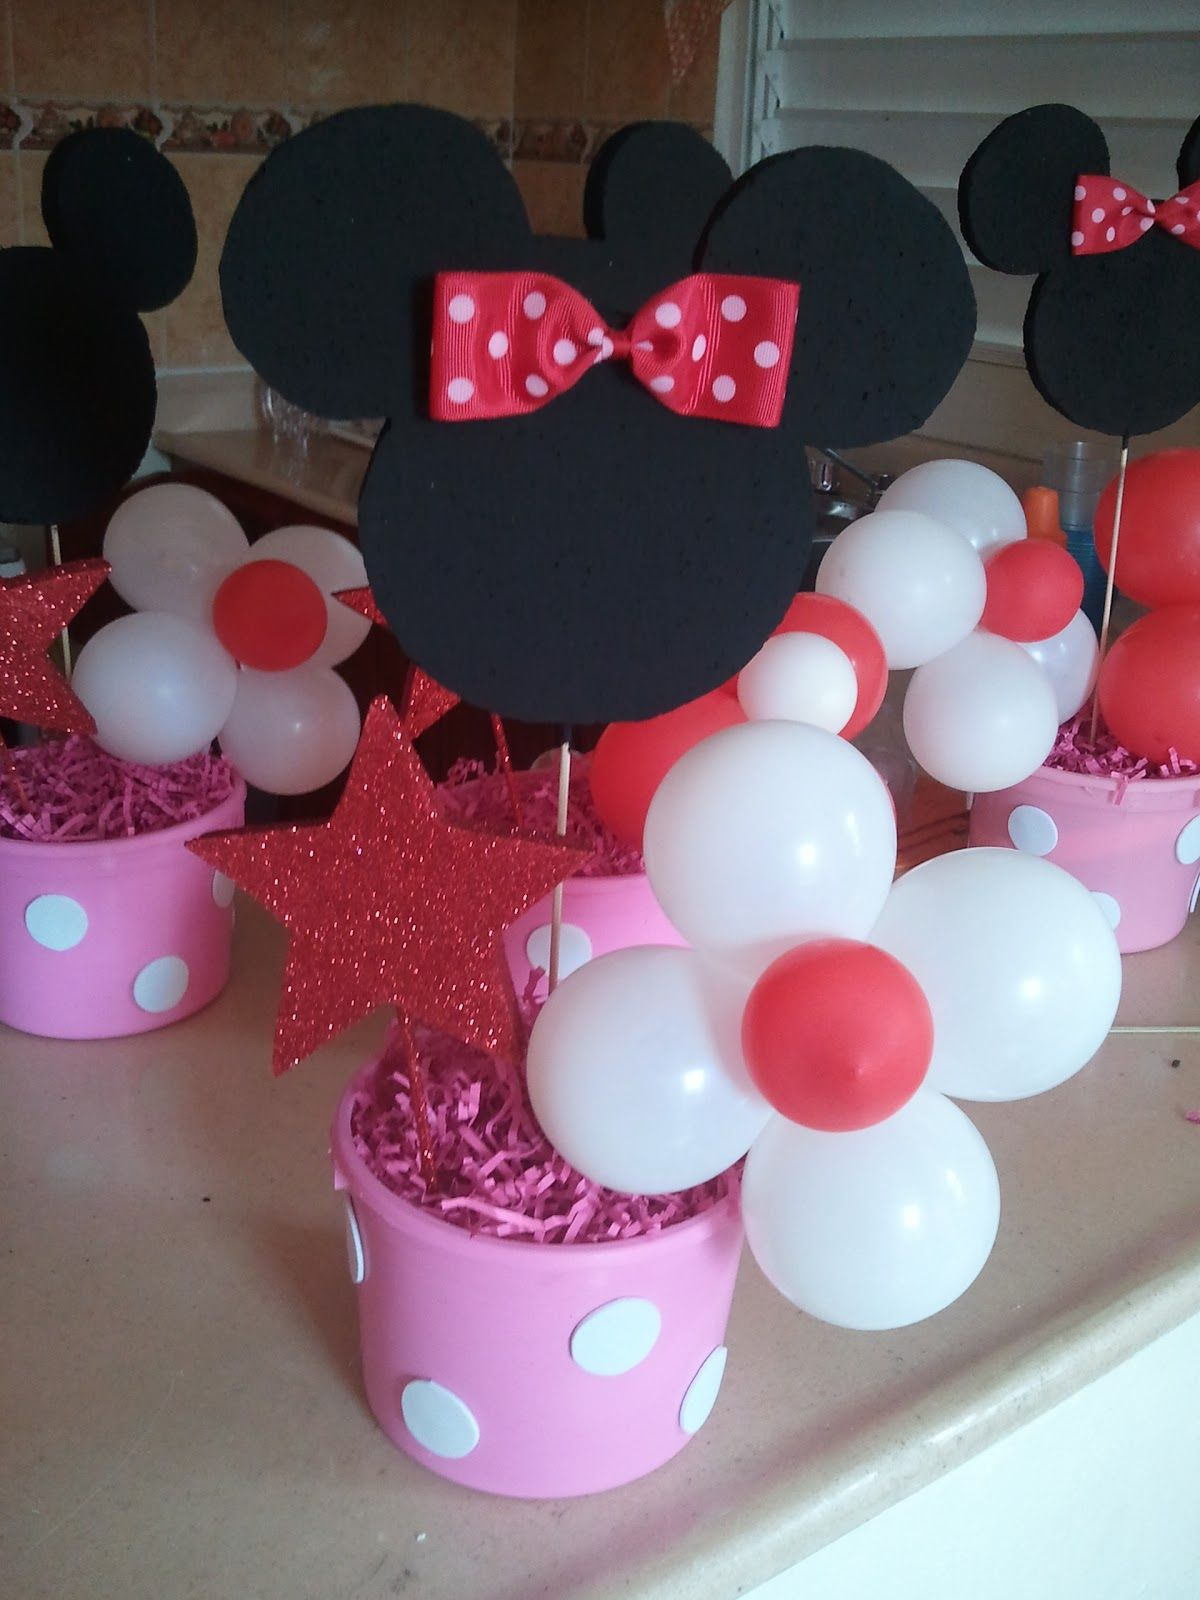 Lillys Backyard DIY Minnie Mouse Party Ideas Centerpieces